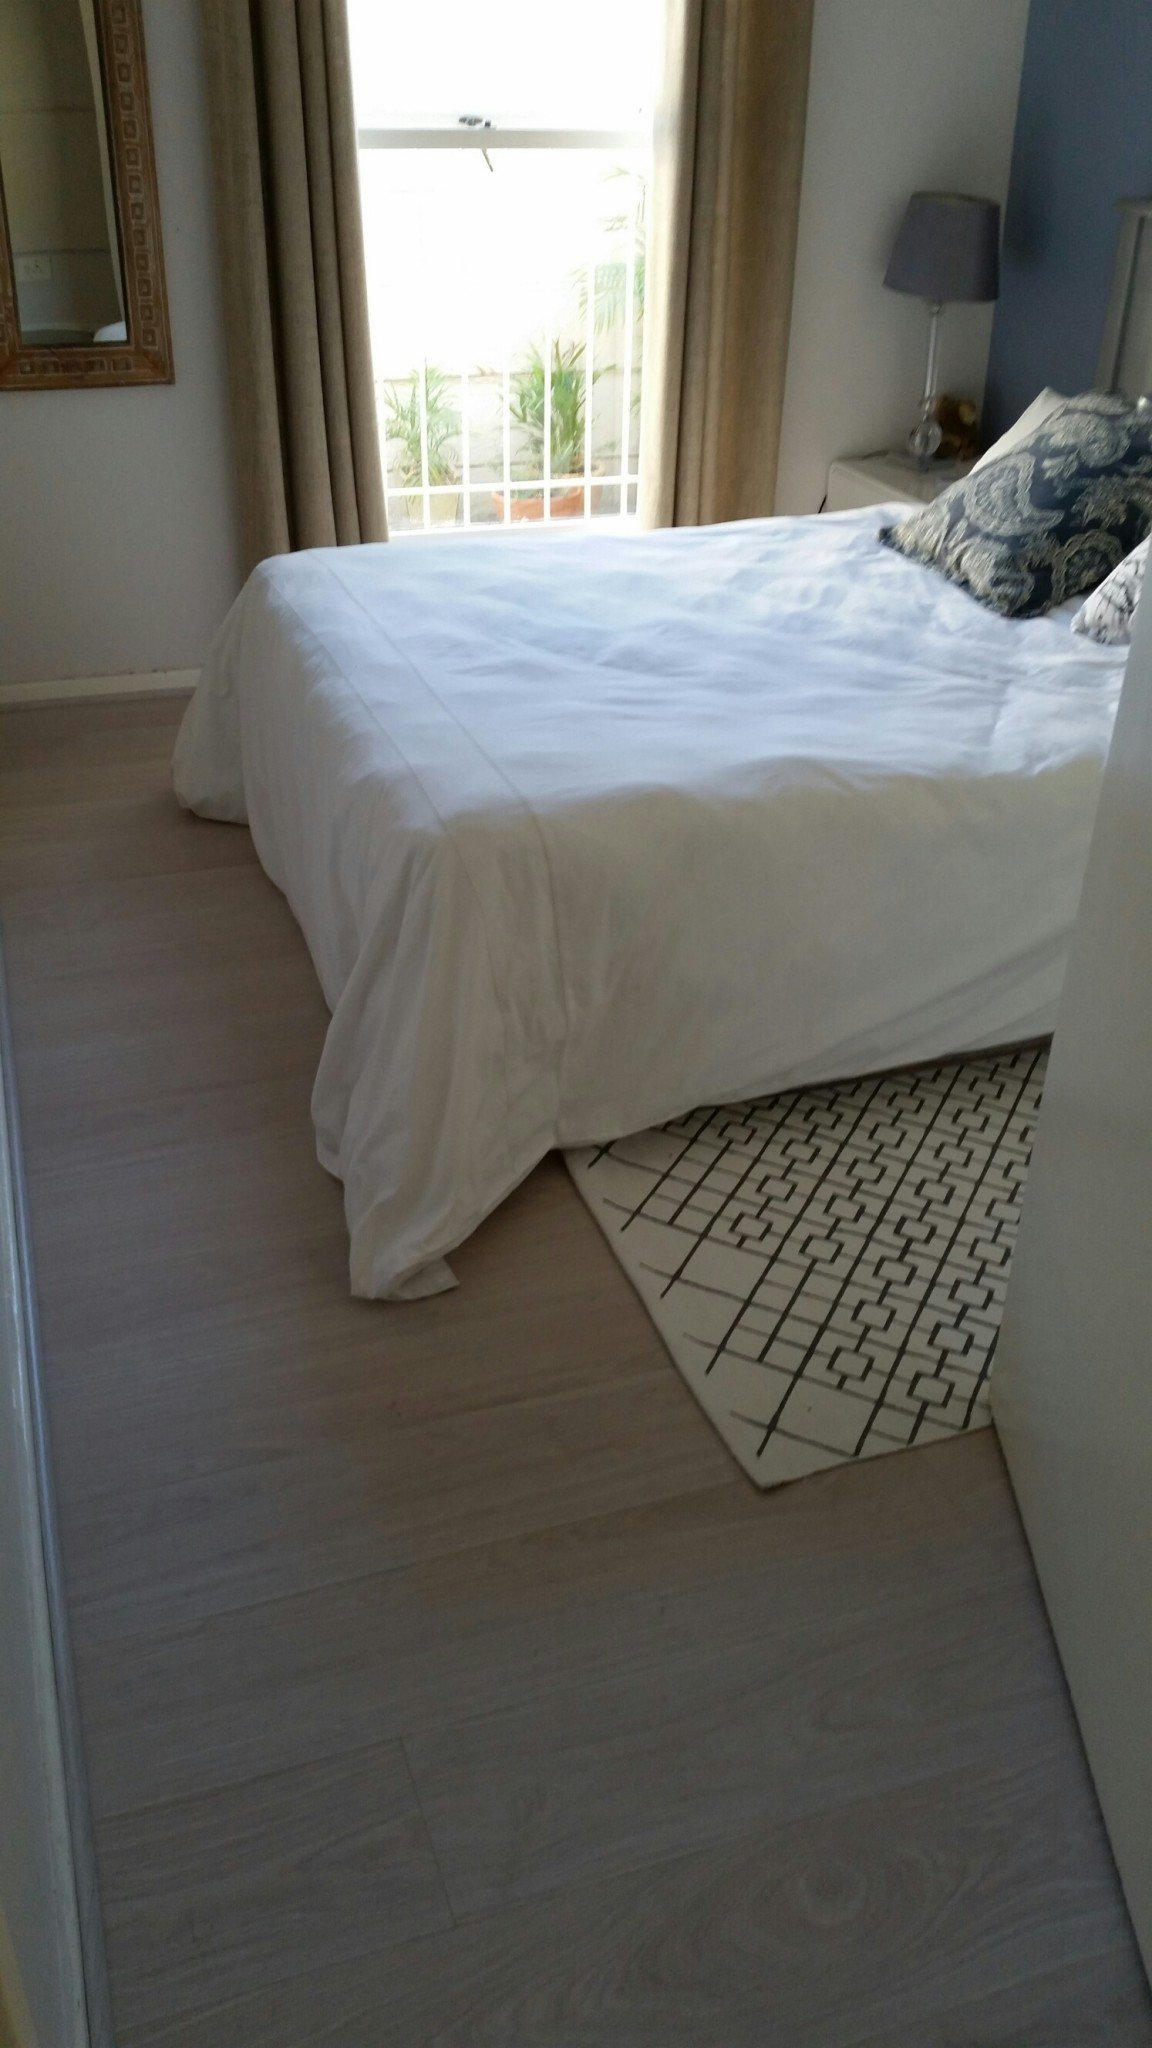 Exquisite Kronotex Waveless Oak White 8mm Laminate Boards. Recent installation in Constantia.